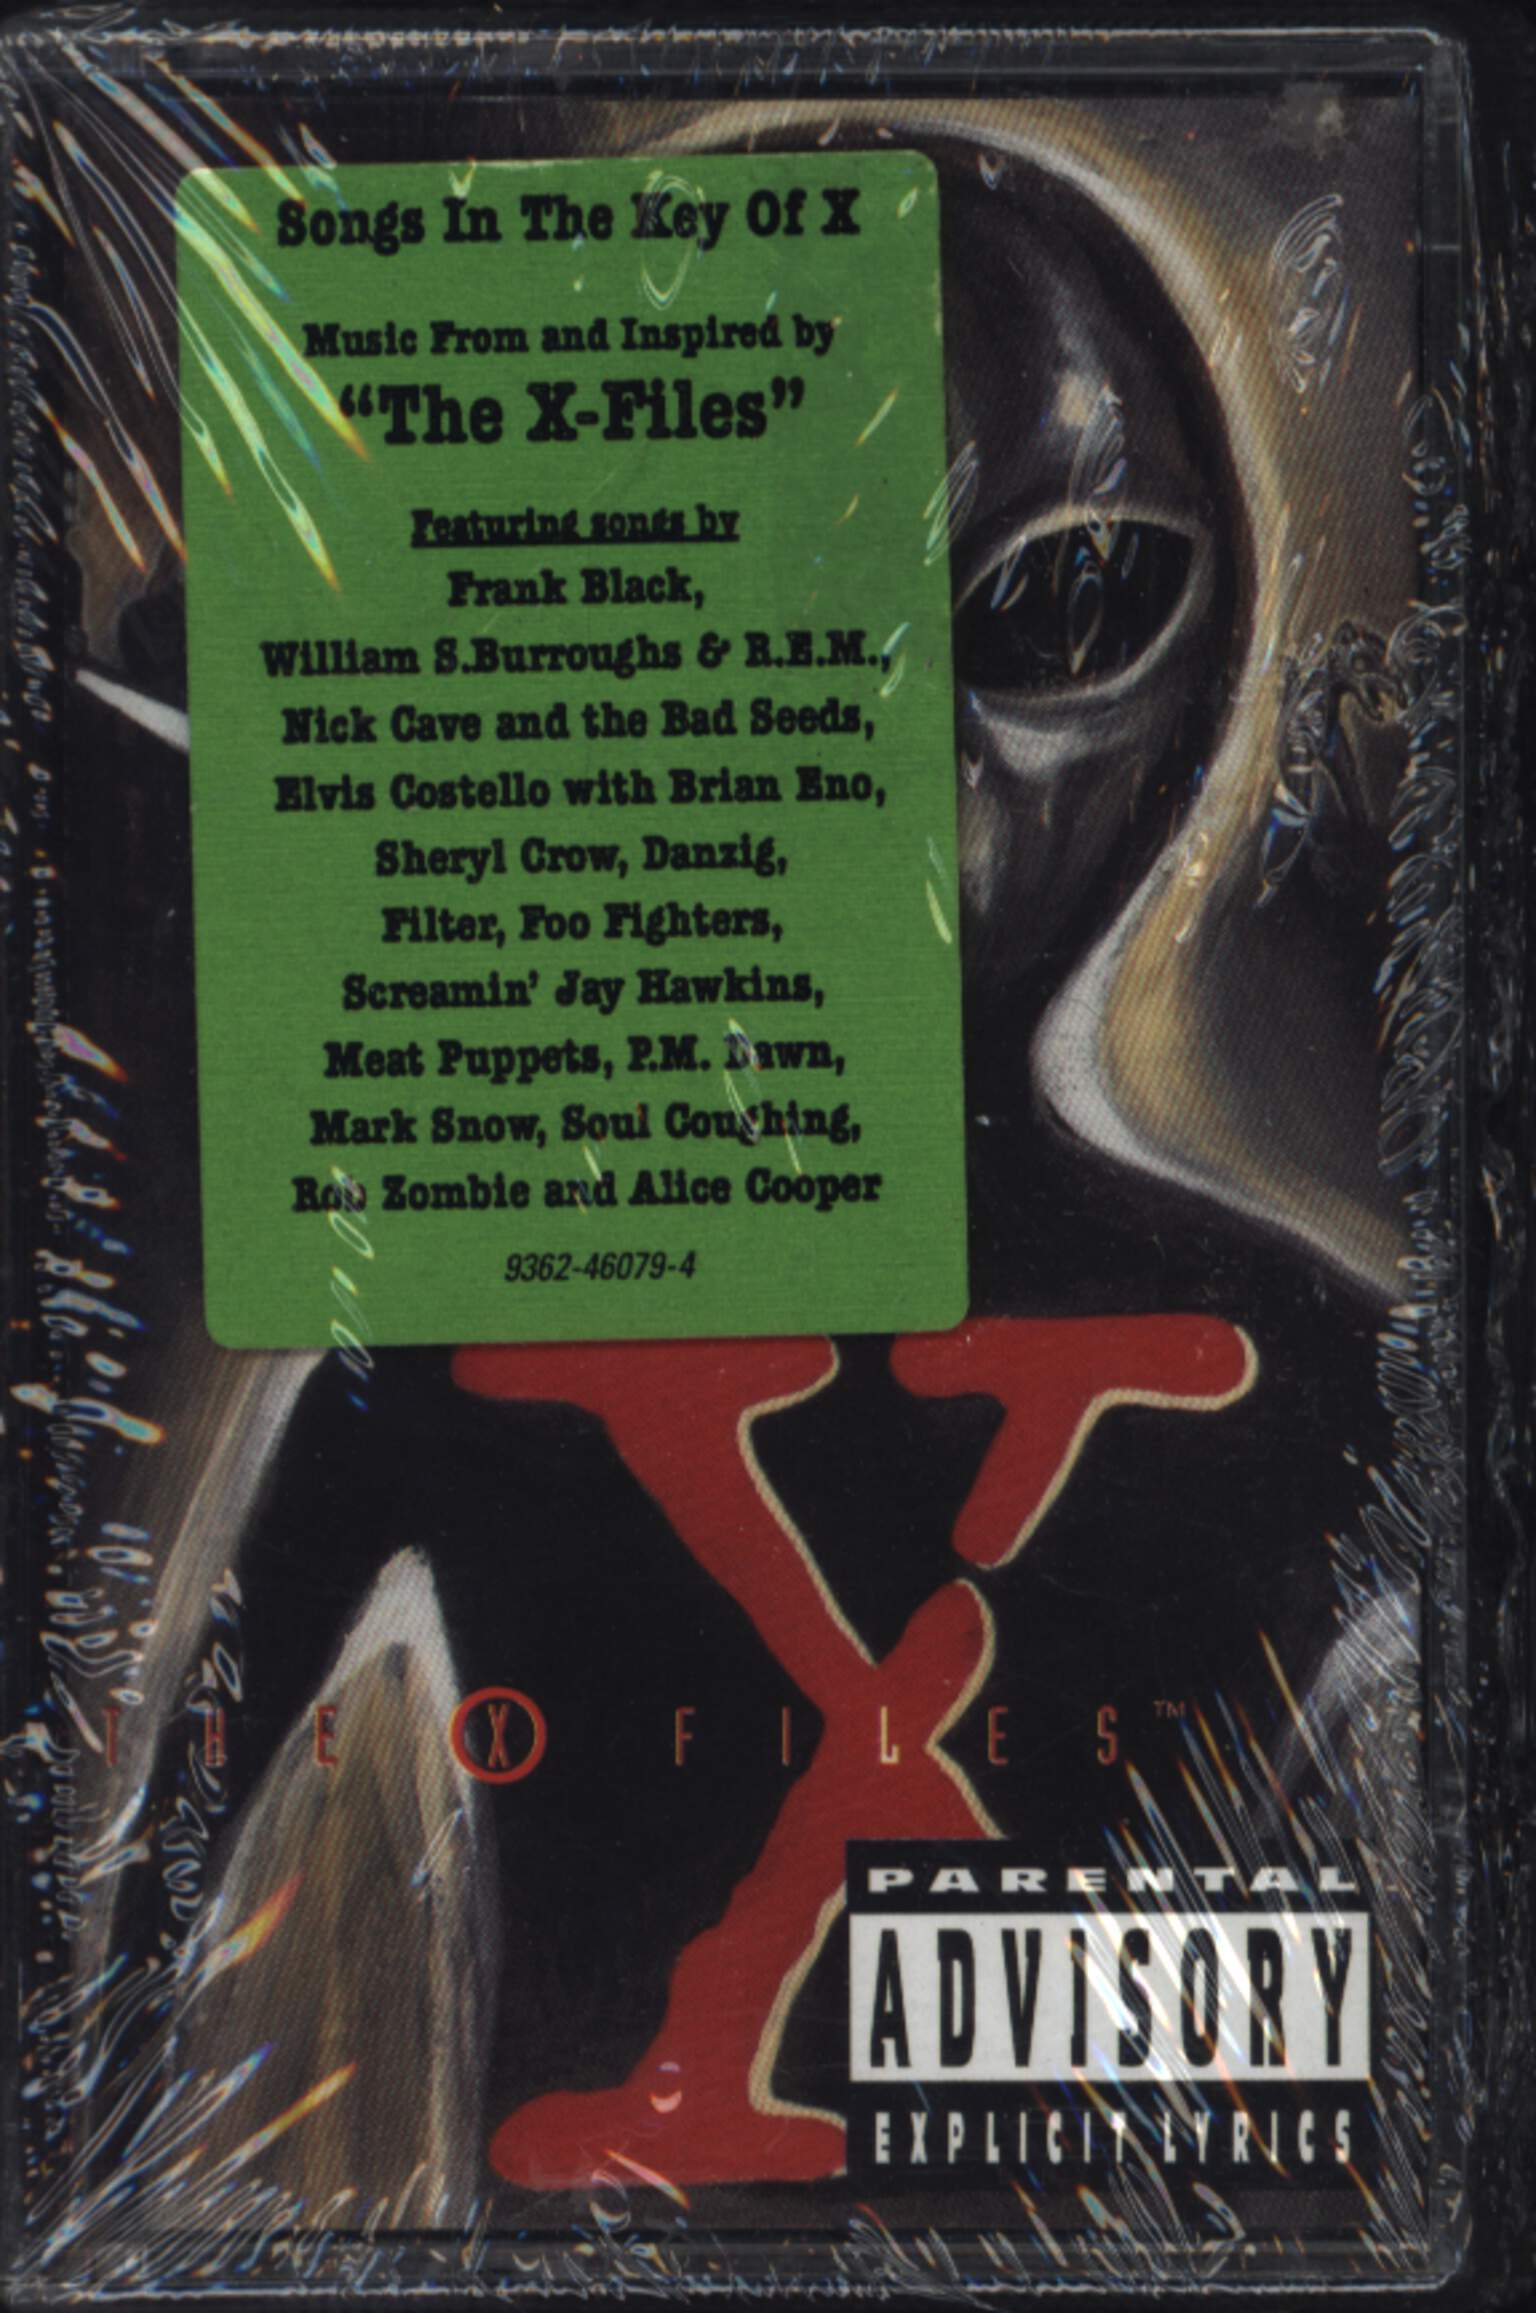 Various: The X-Files - Songs In The Key Of X, Compact Cassette